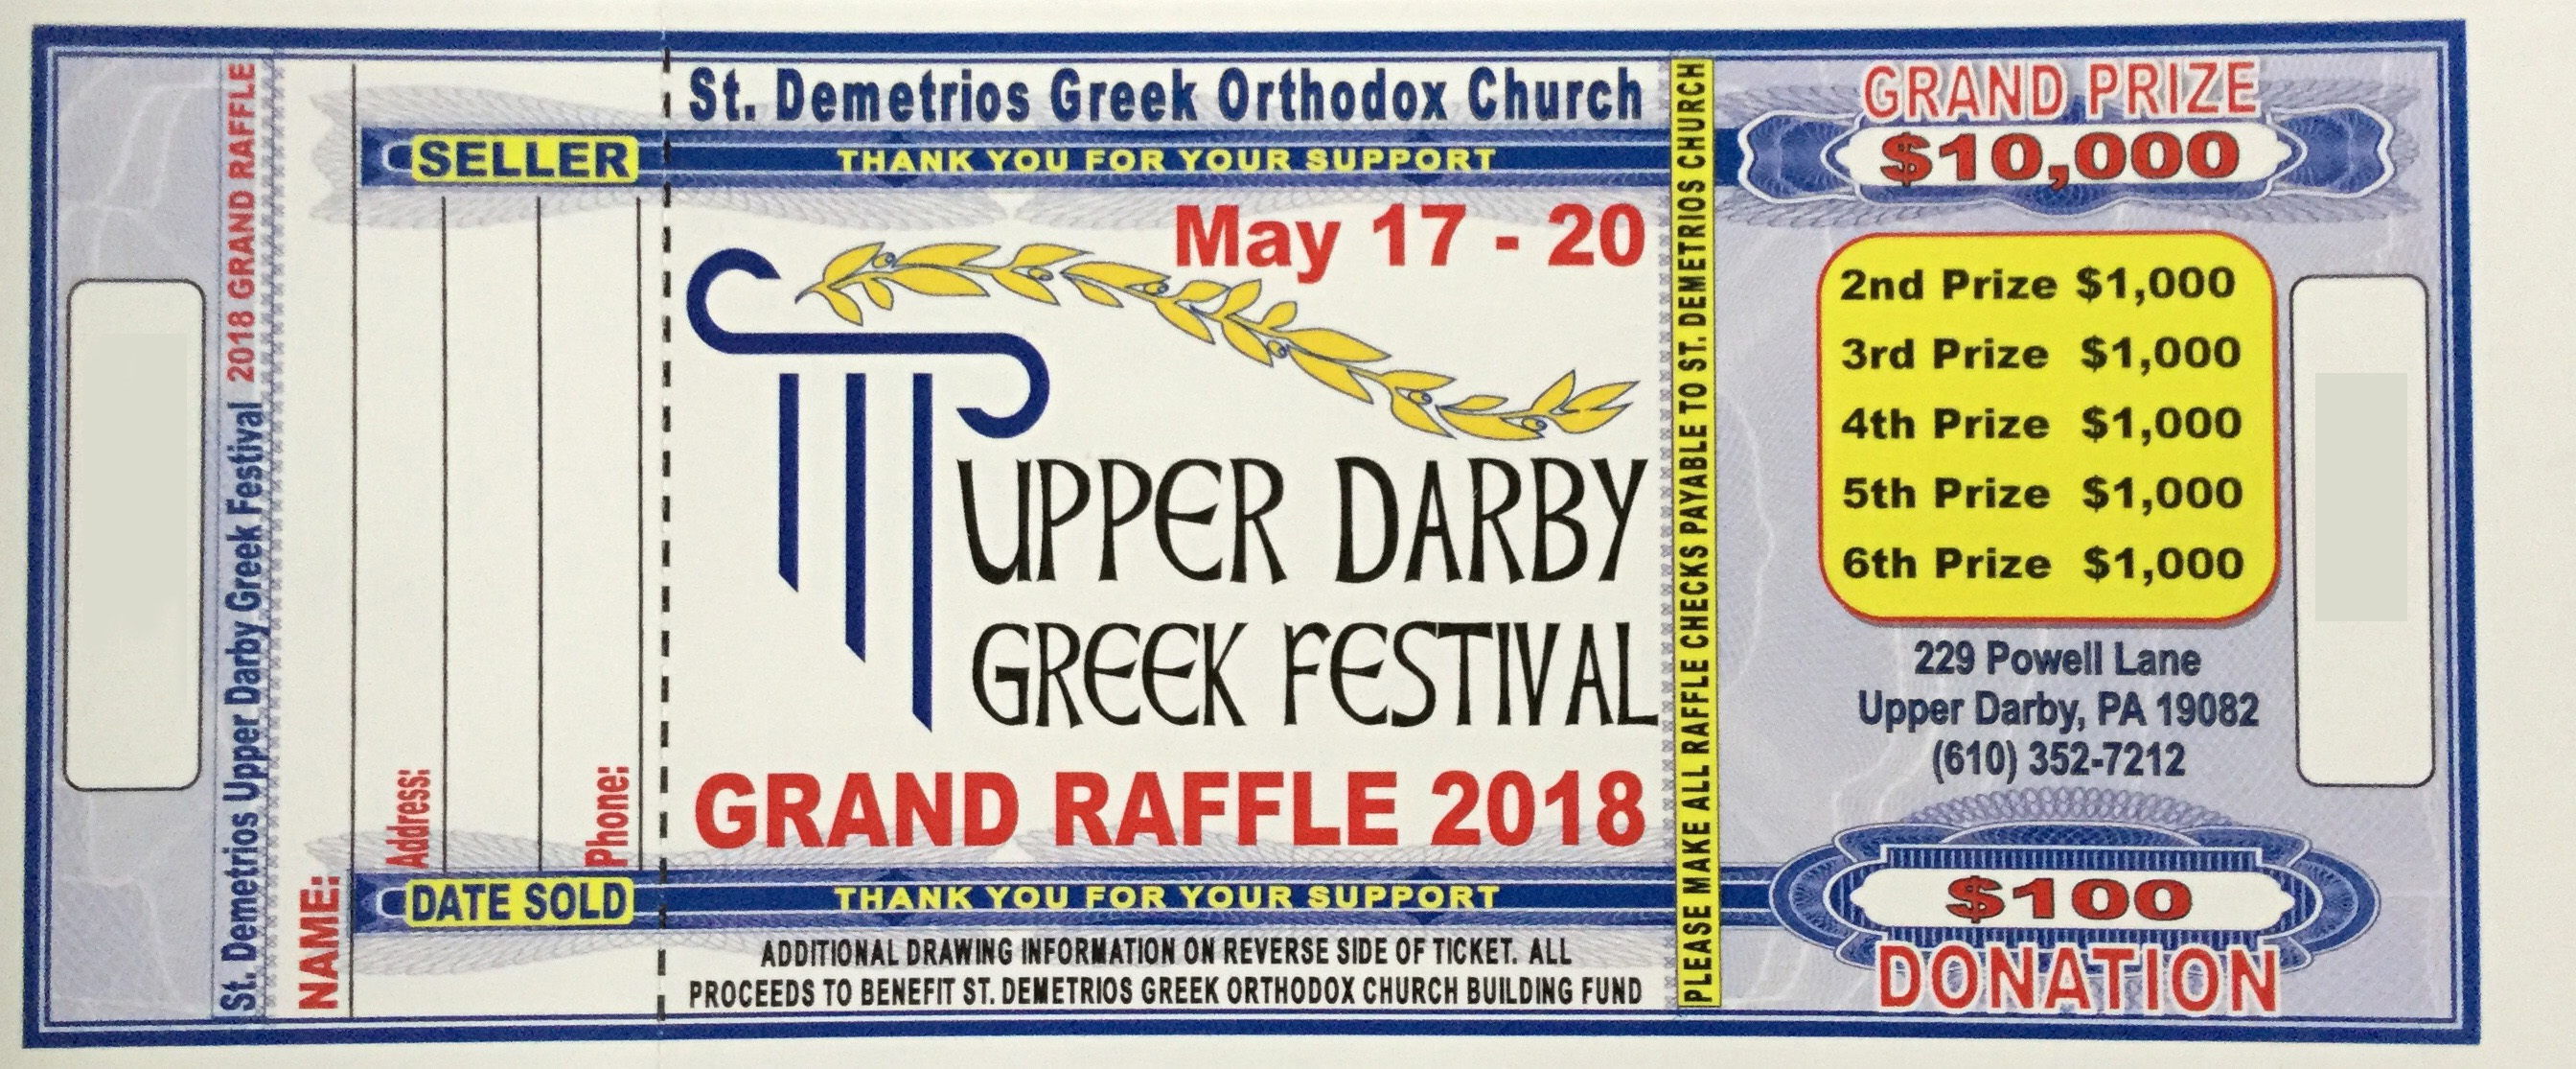 festival raffle ticket st demetrios greek orthodox church